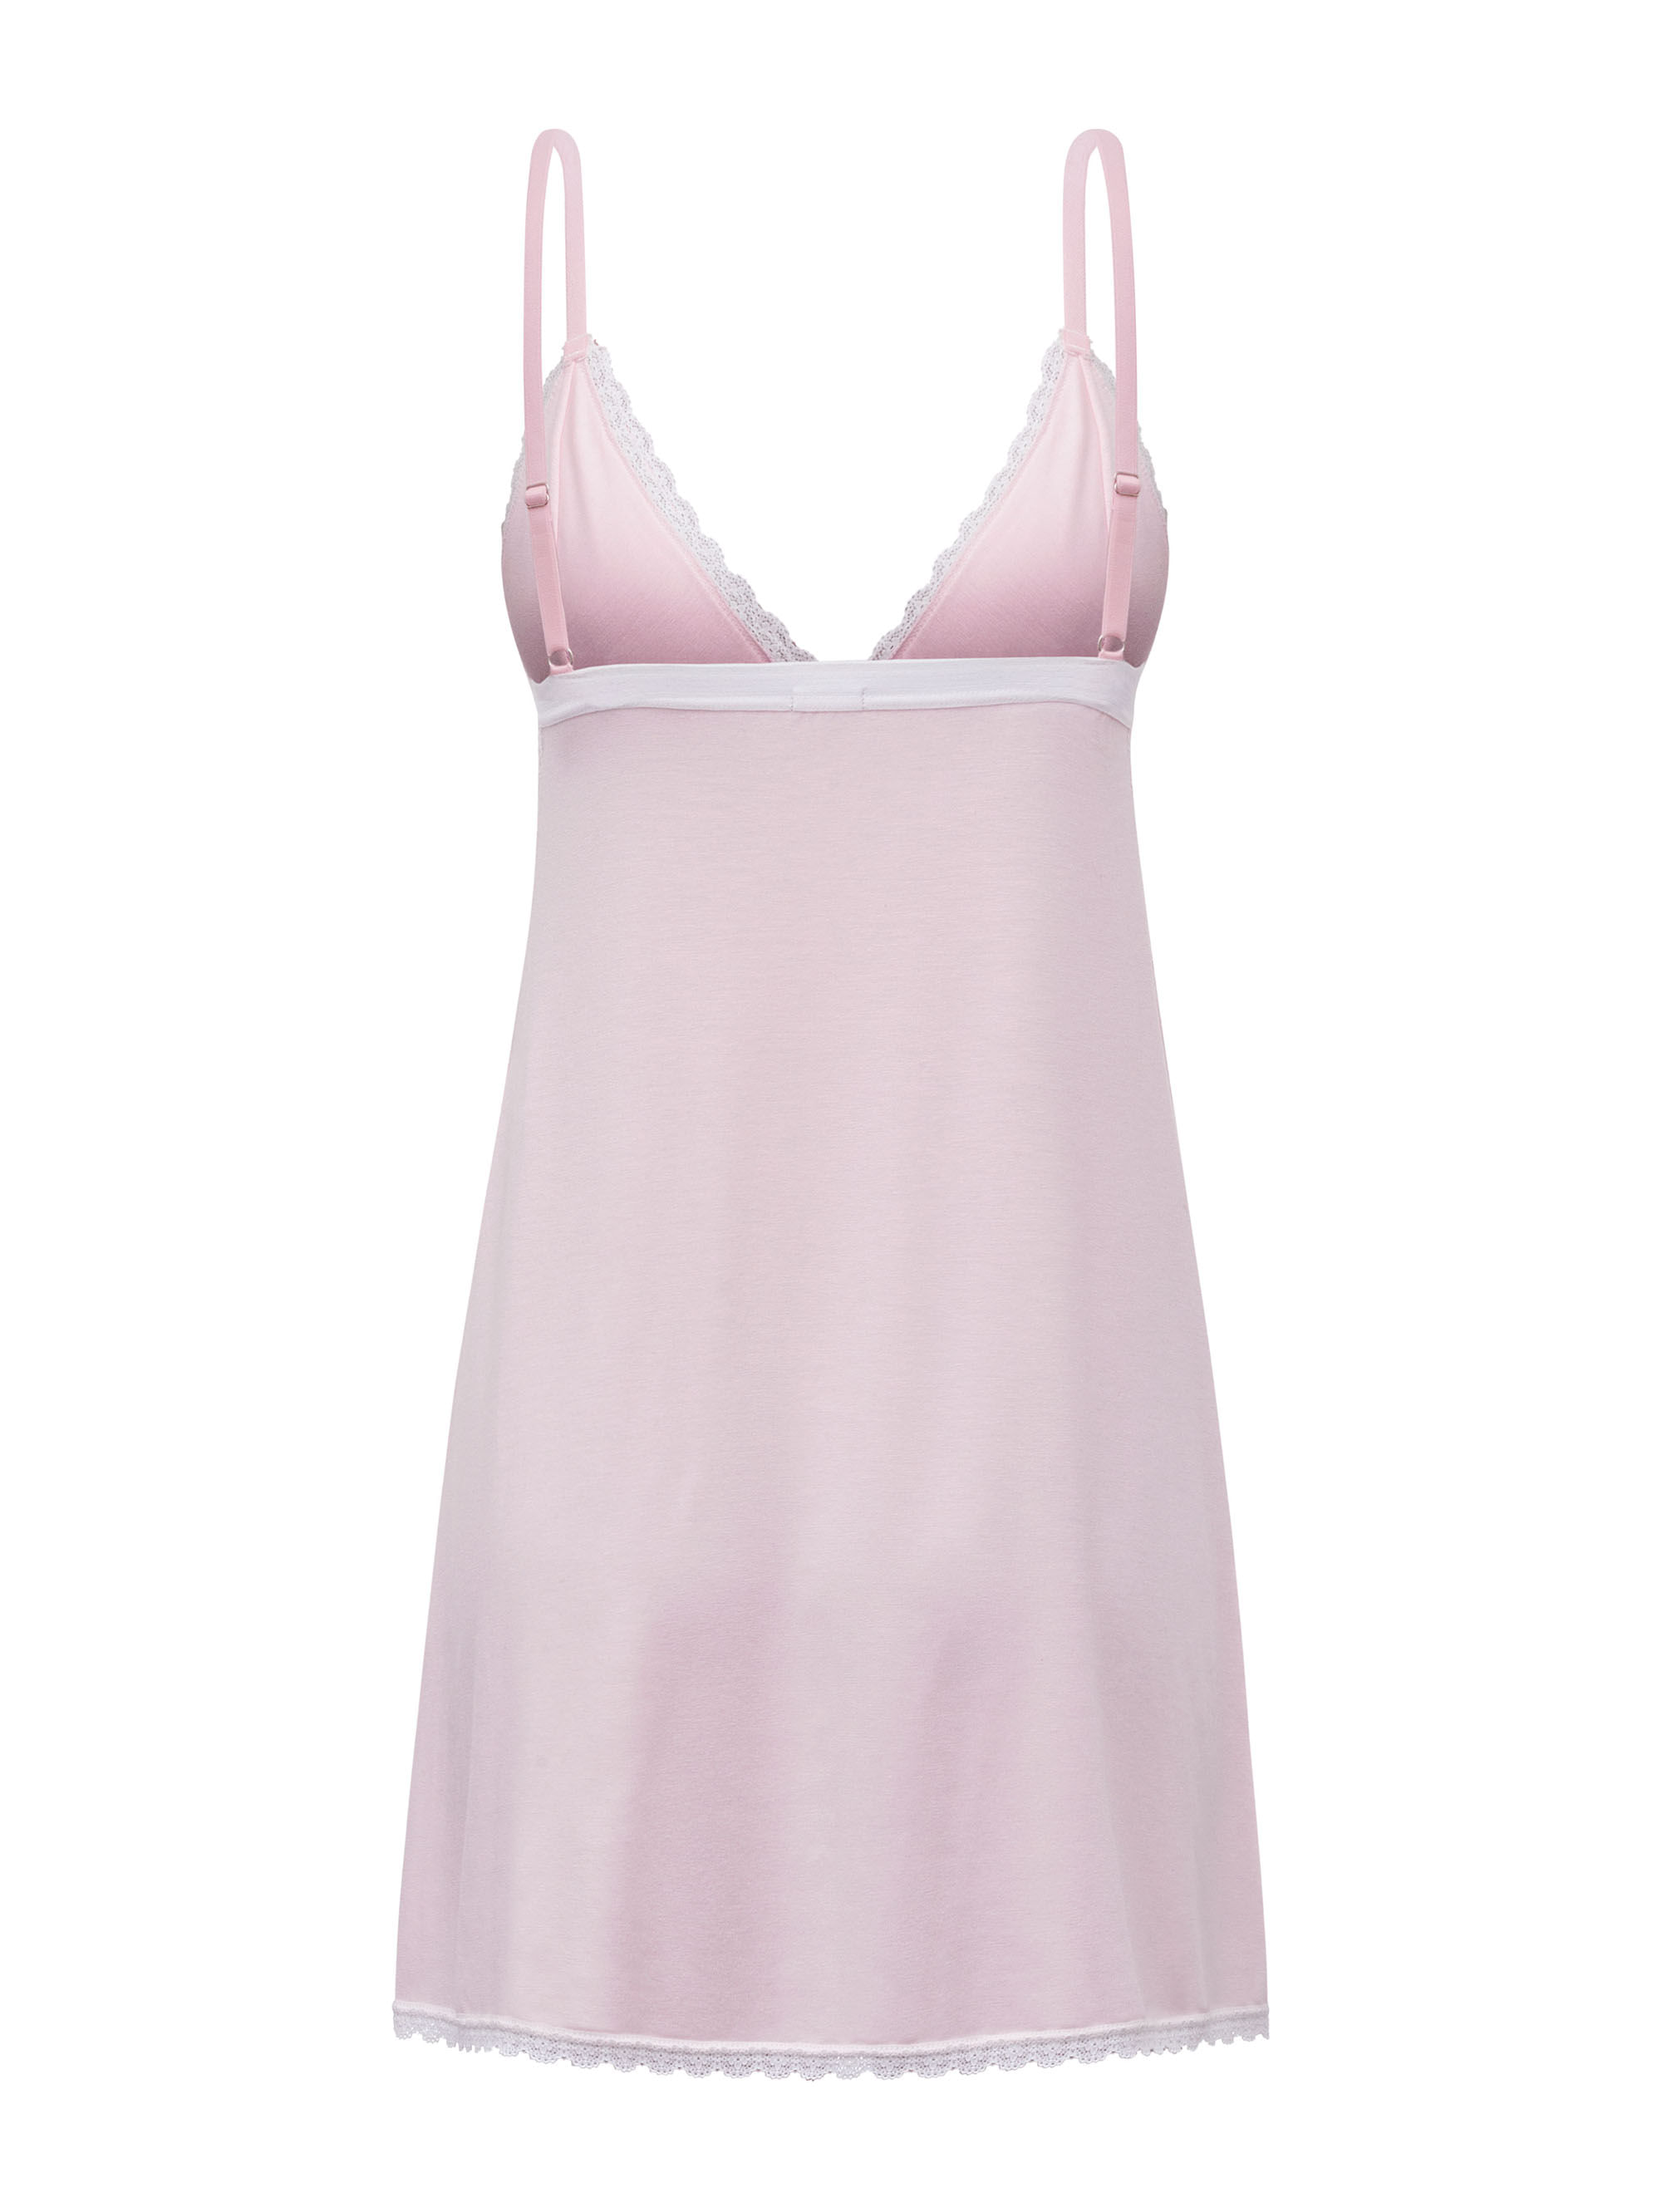 CAMISOLA-SWEET-PINK-01.01.1815-VERSO